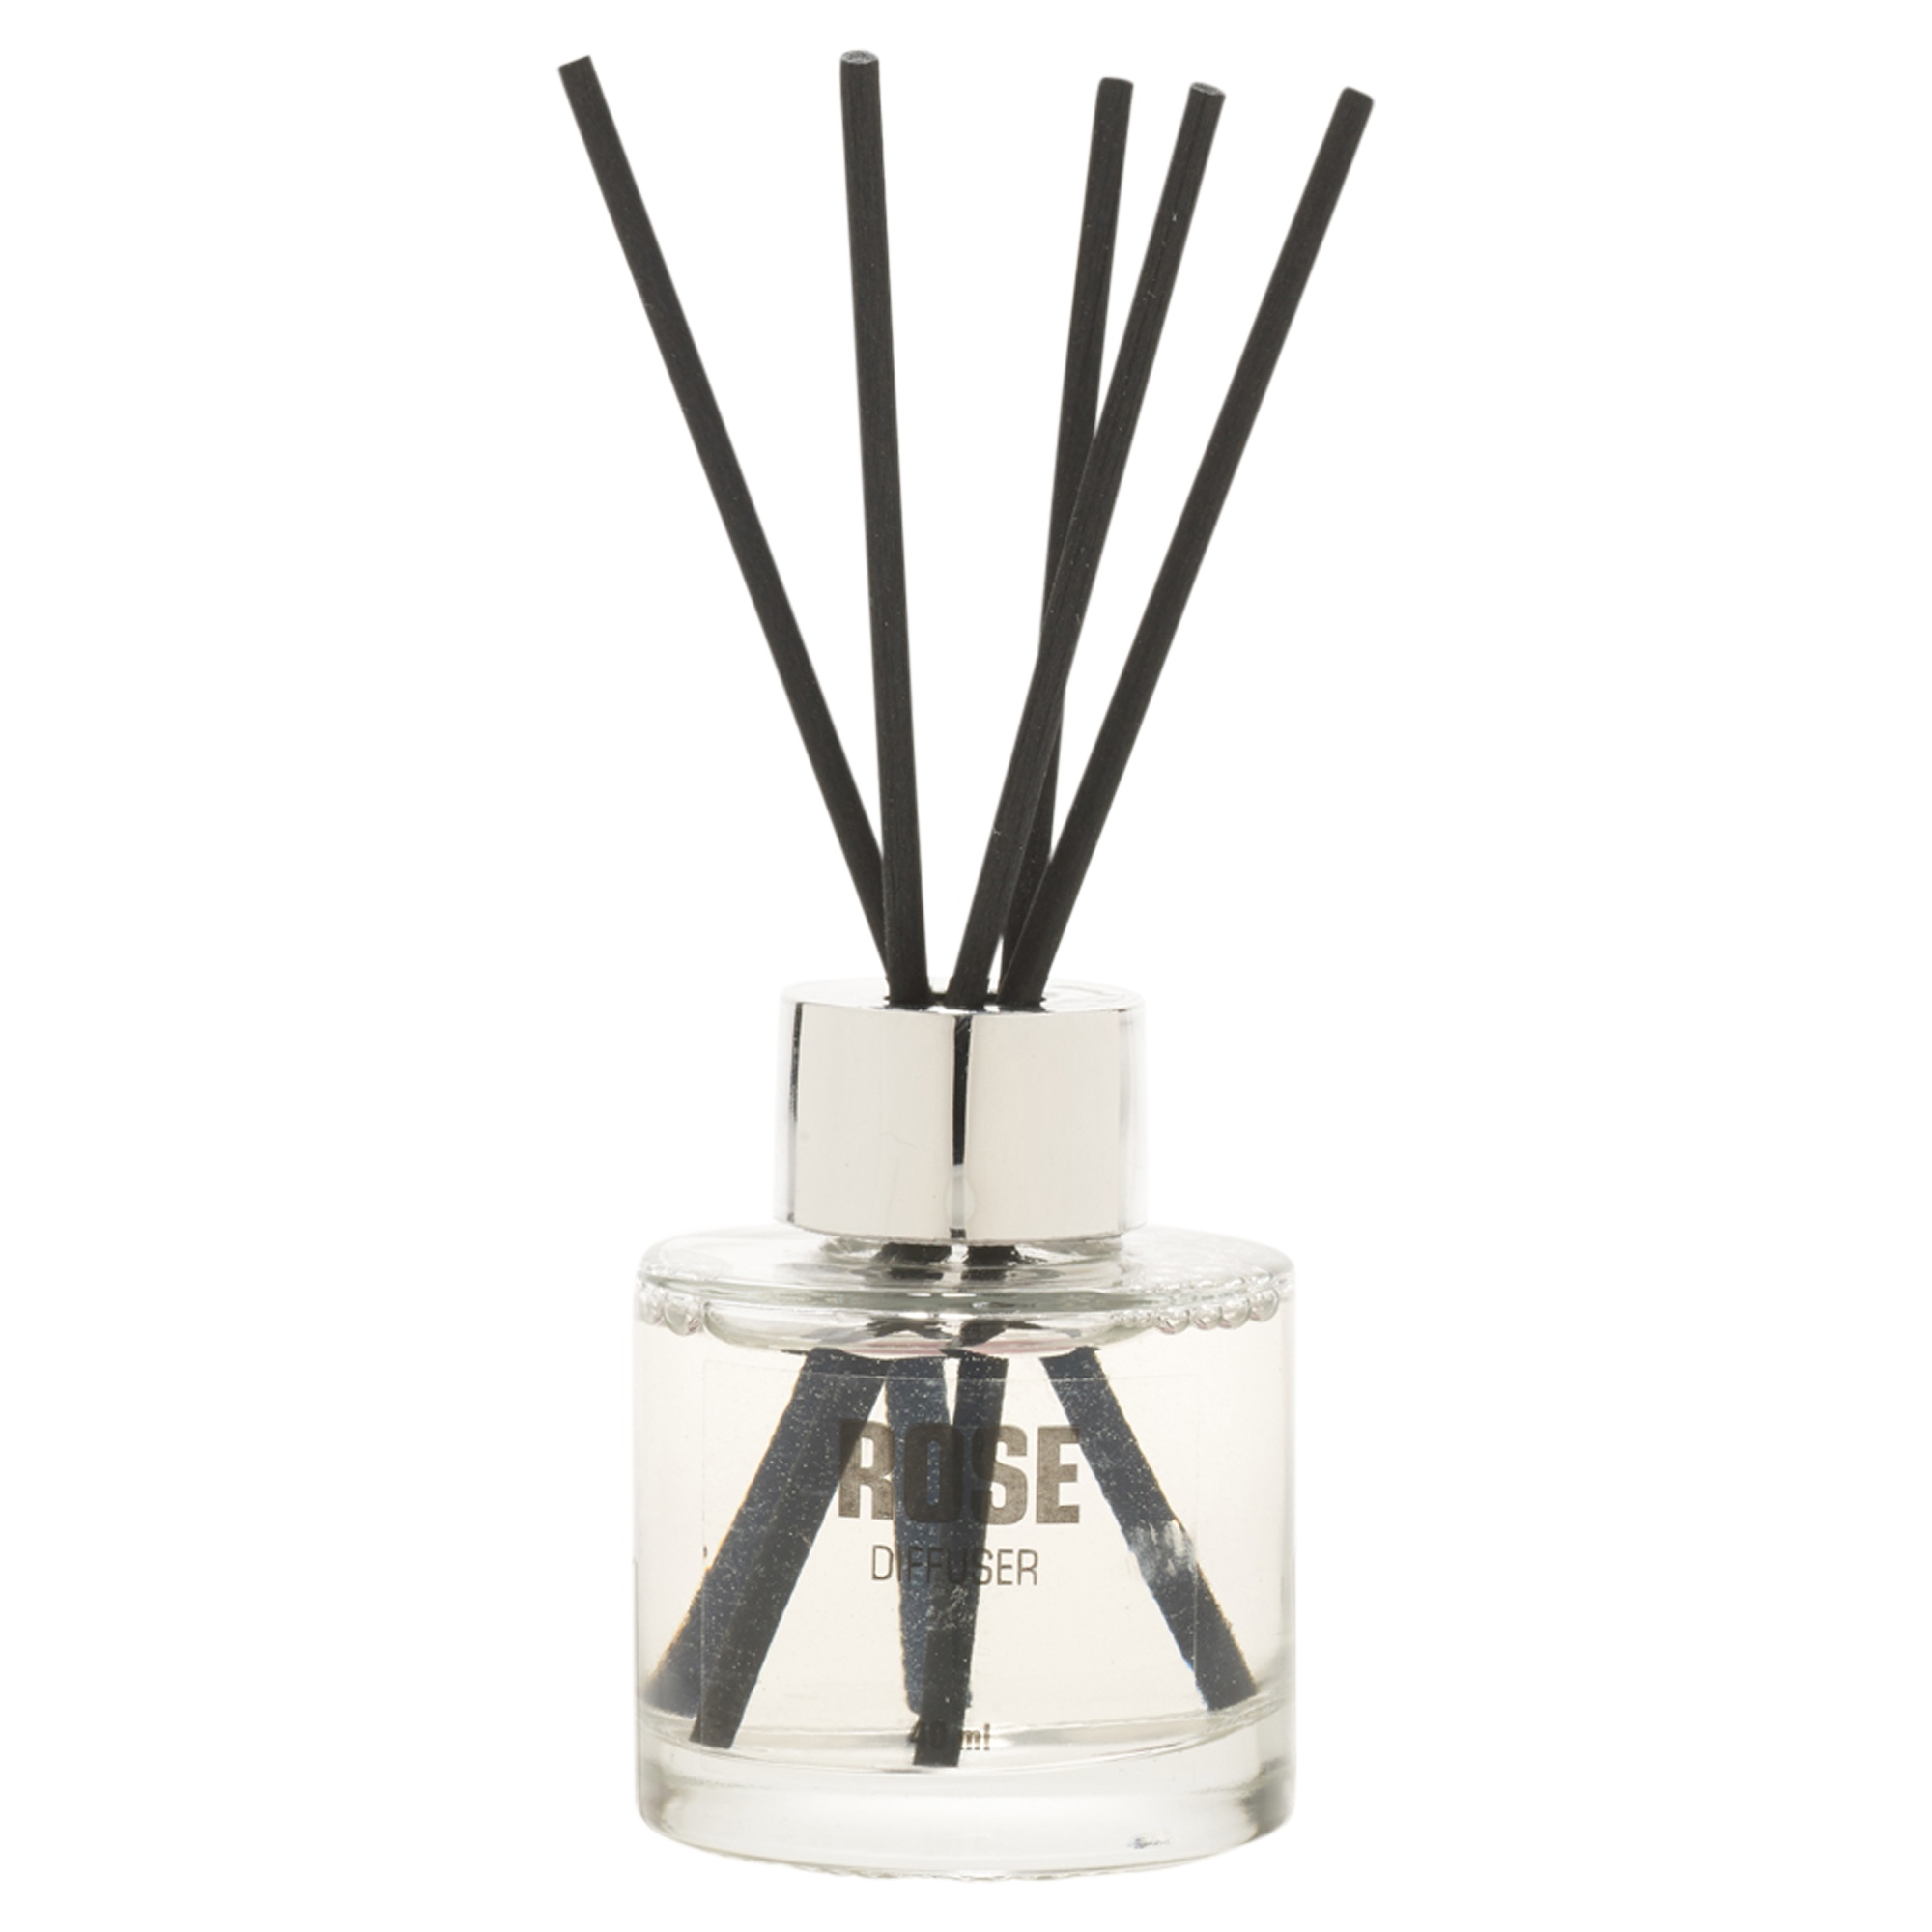 #747457 Fragrance Reed Diffuser Aroma Gift Set 3 Scents Fragrant  Most Effective 1175 Aromatherapy Diffuser Set pictures with 2000x2000 px on helpvideos.info - Air Conditioners, Air Coolers and more